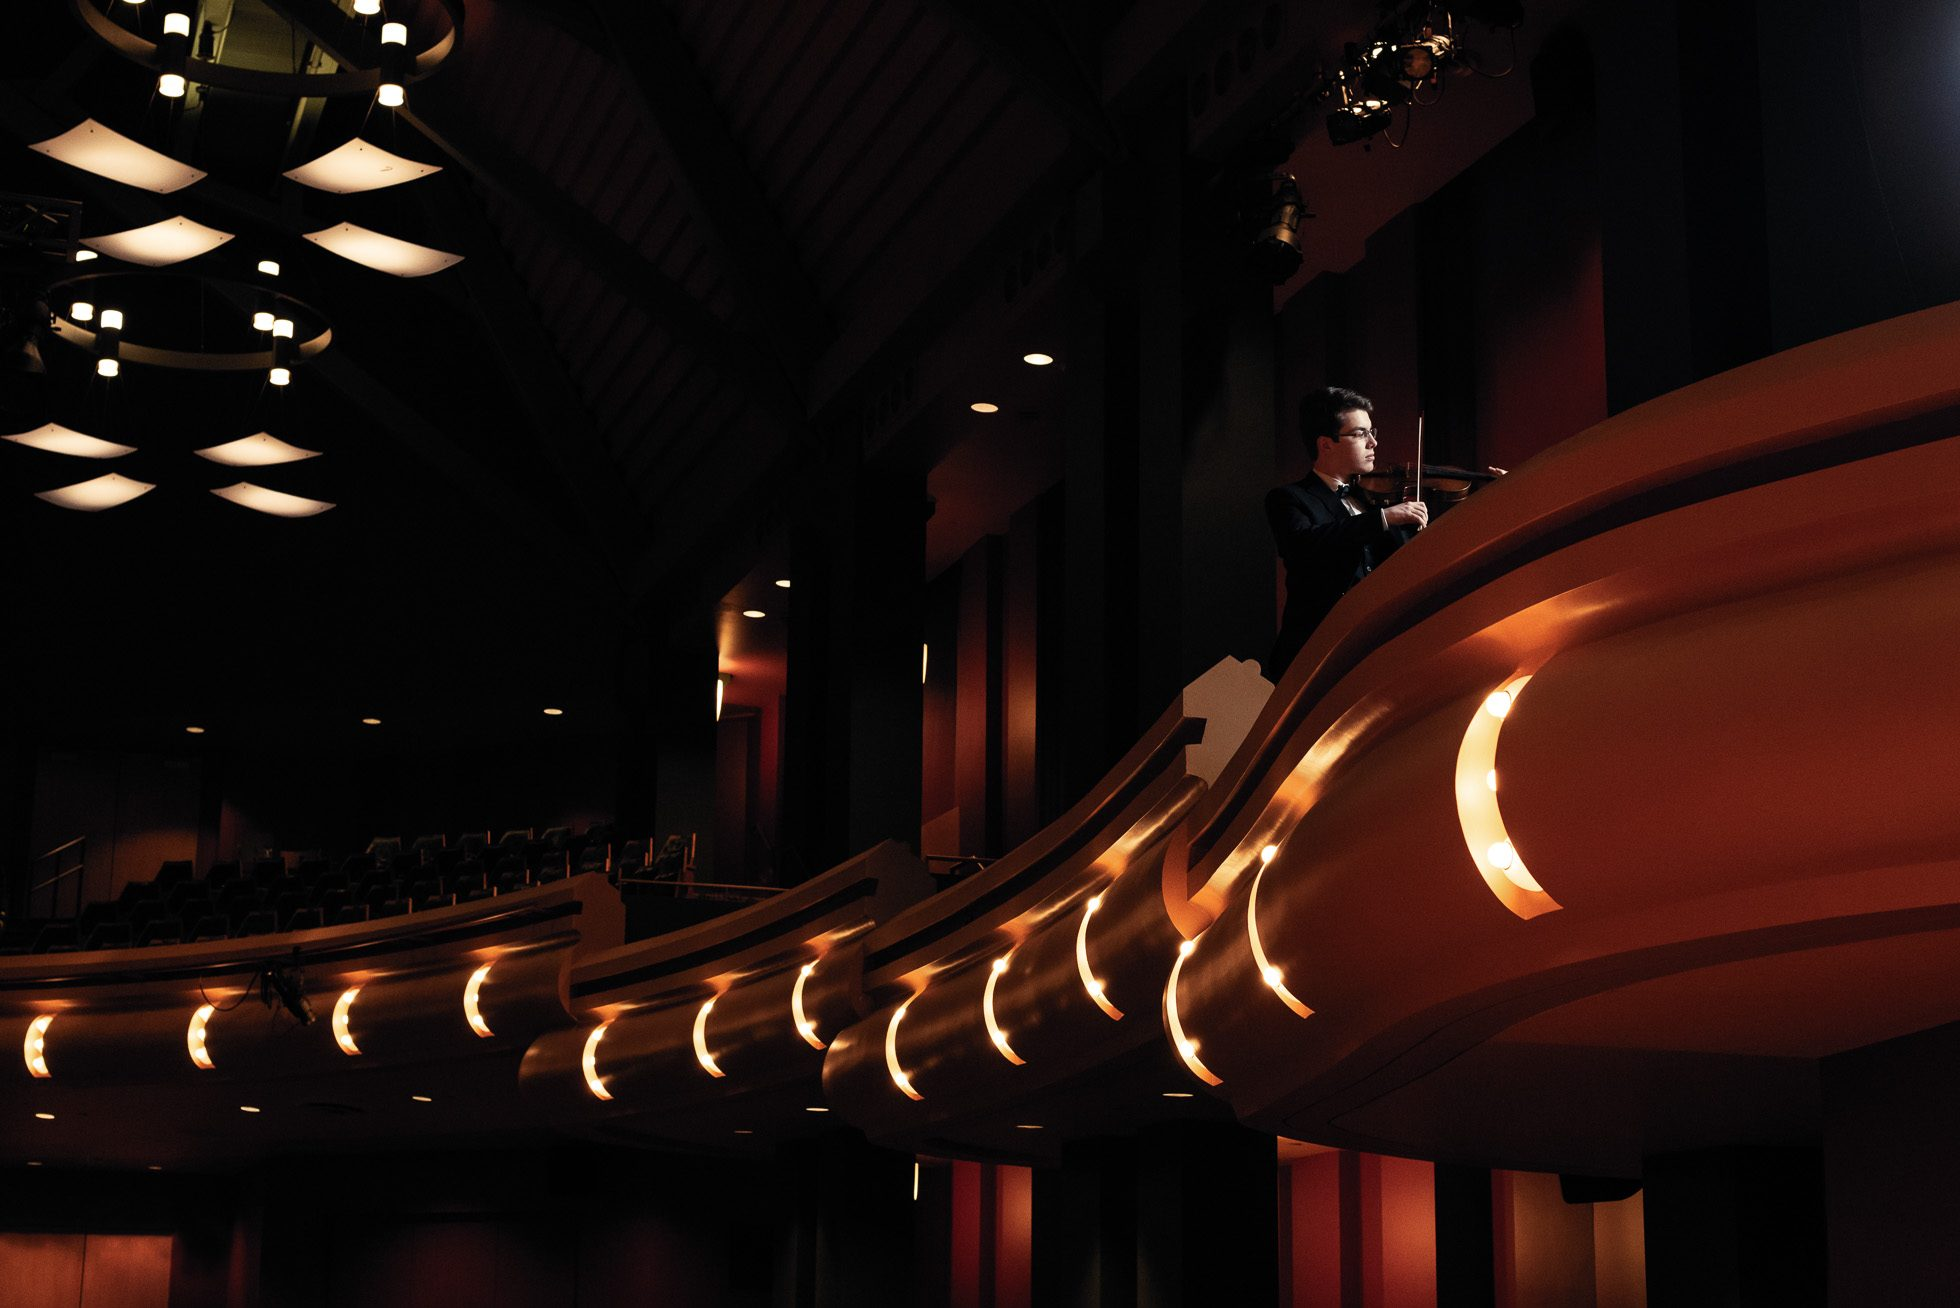 A high school senior boy plays his violin in the balcony of the Leighton Concert Hall of Notre Dame University's Debartolo Performing Arts Center.